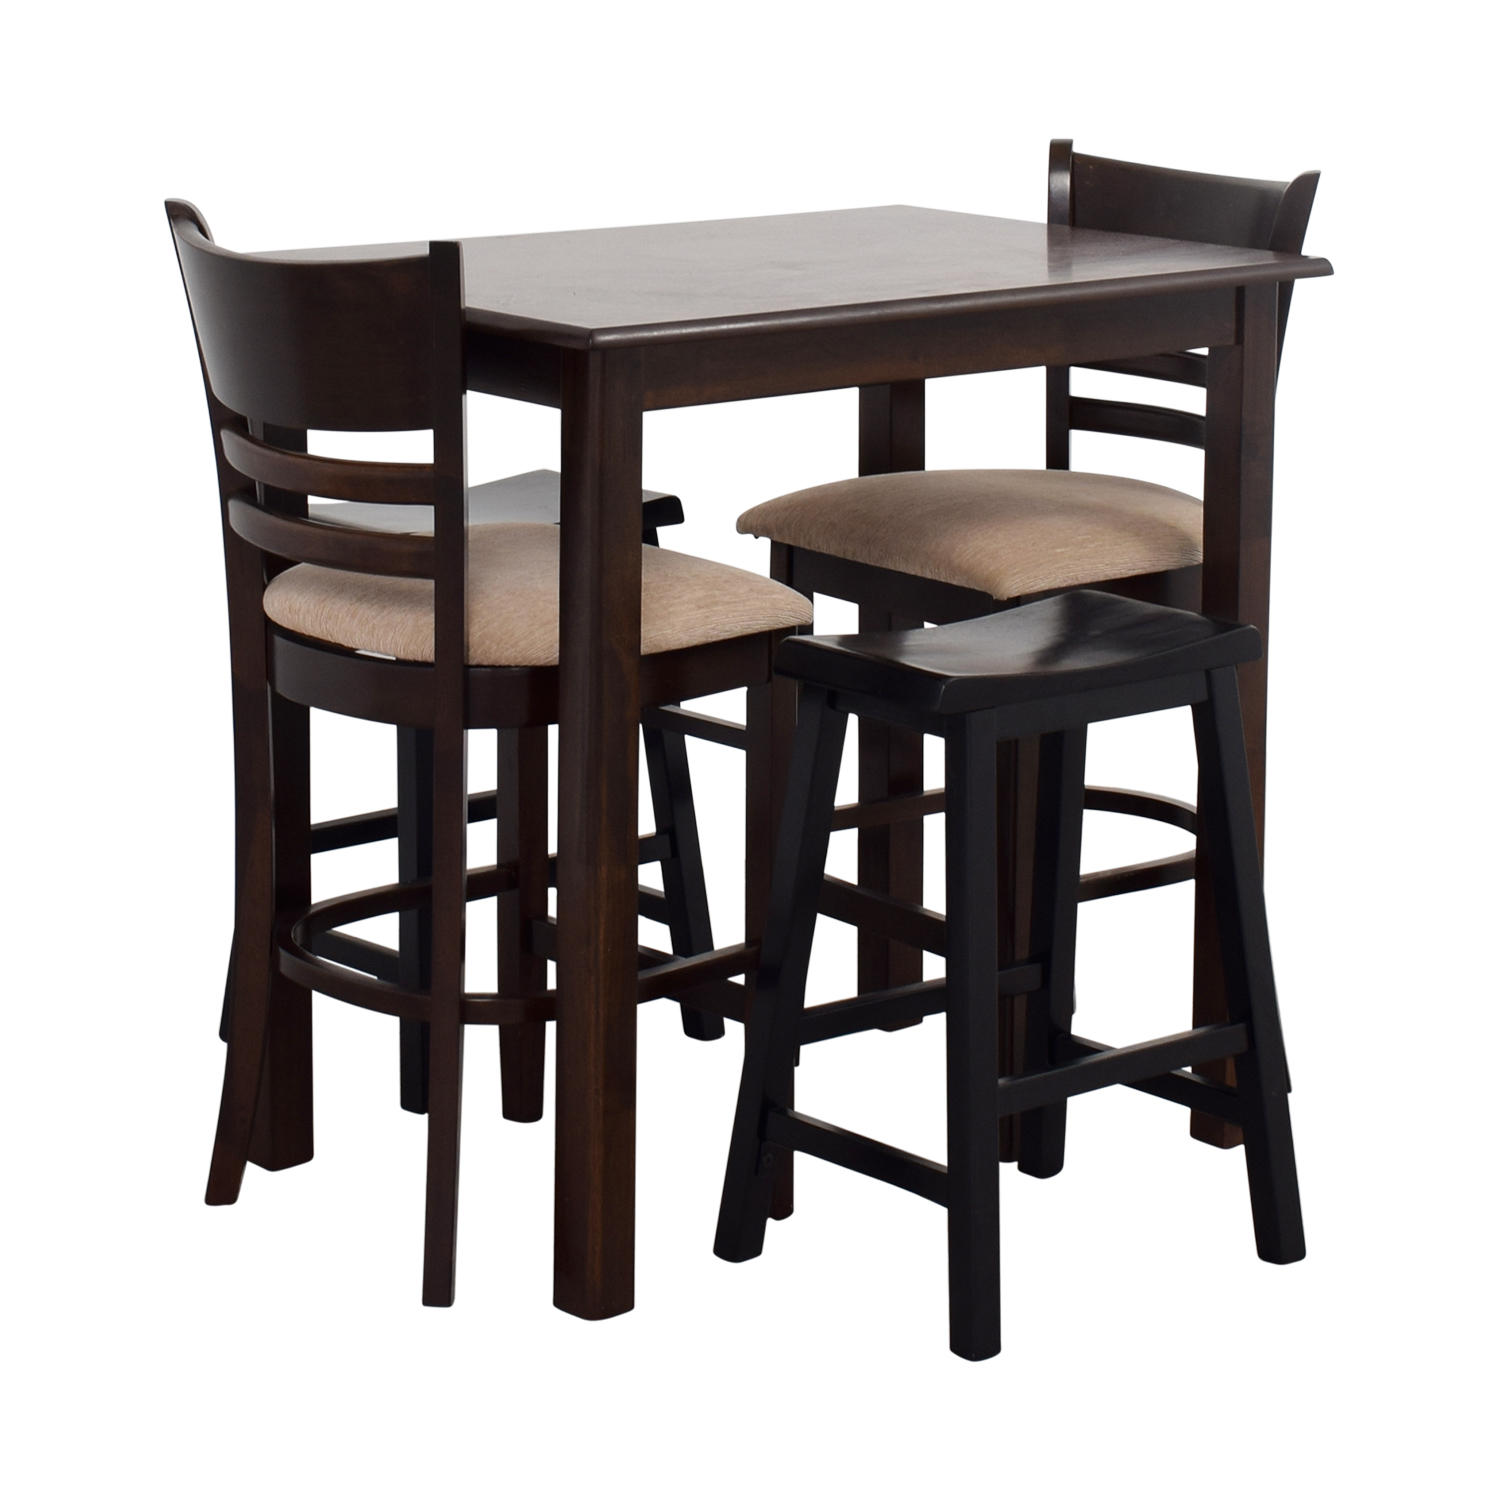 Bar Tables And Chairs 70 Off Simple Bar Table With Two Chairs And Two Stools